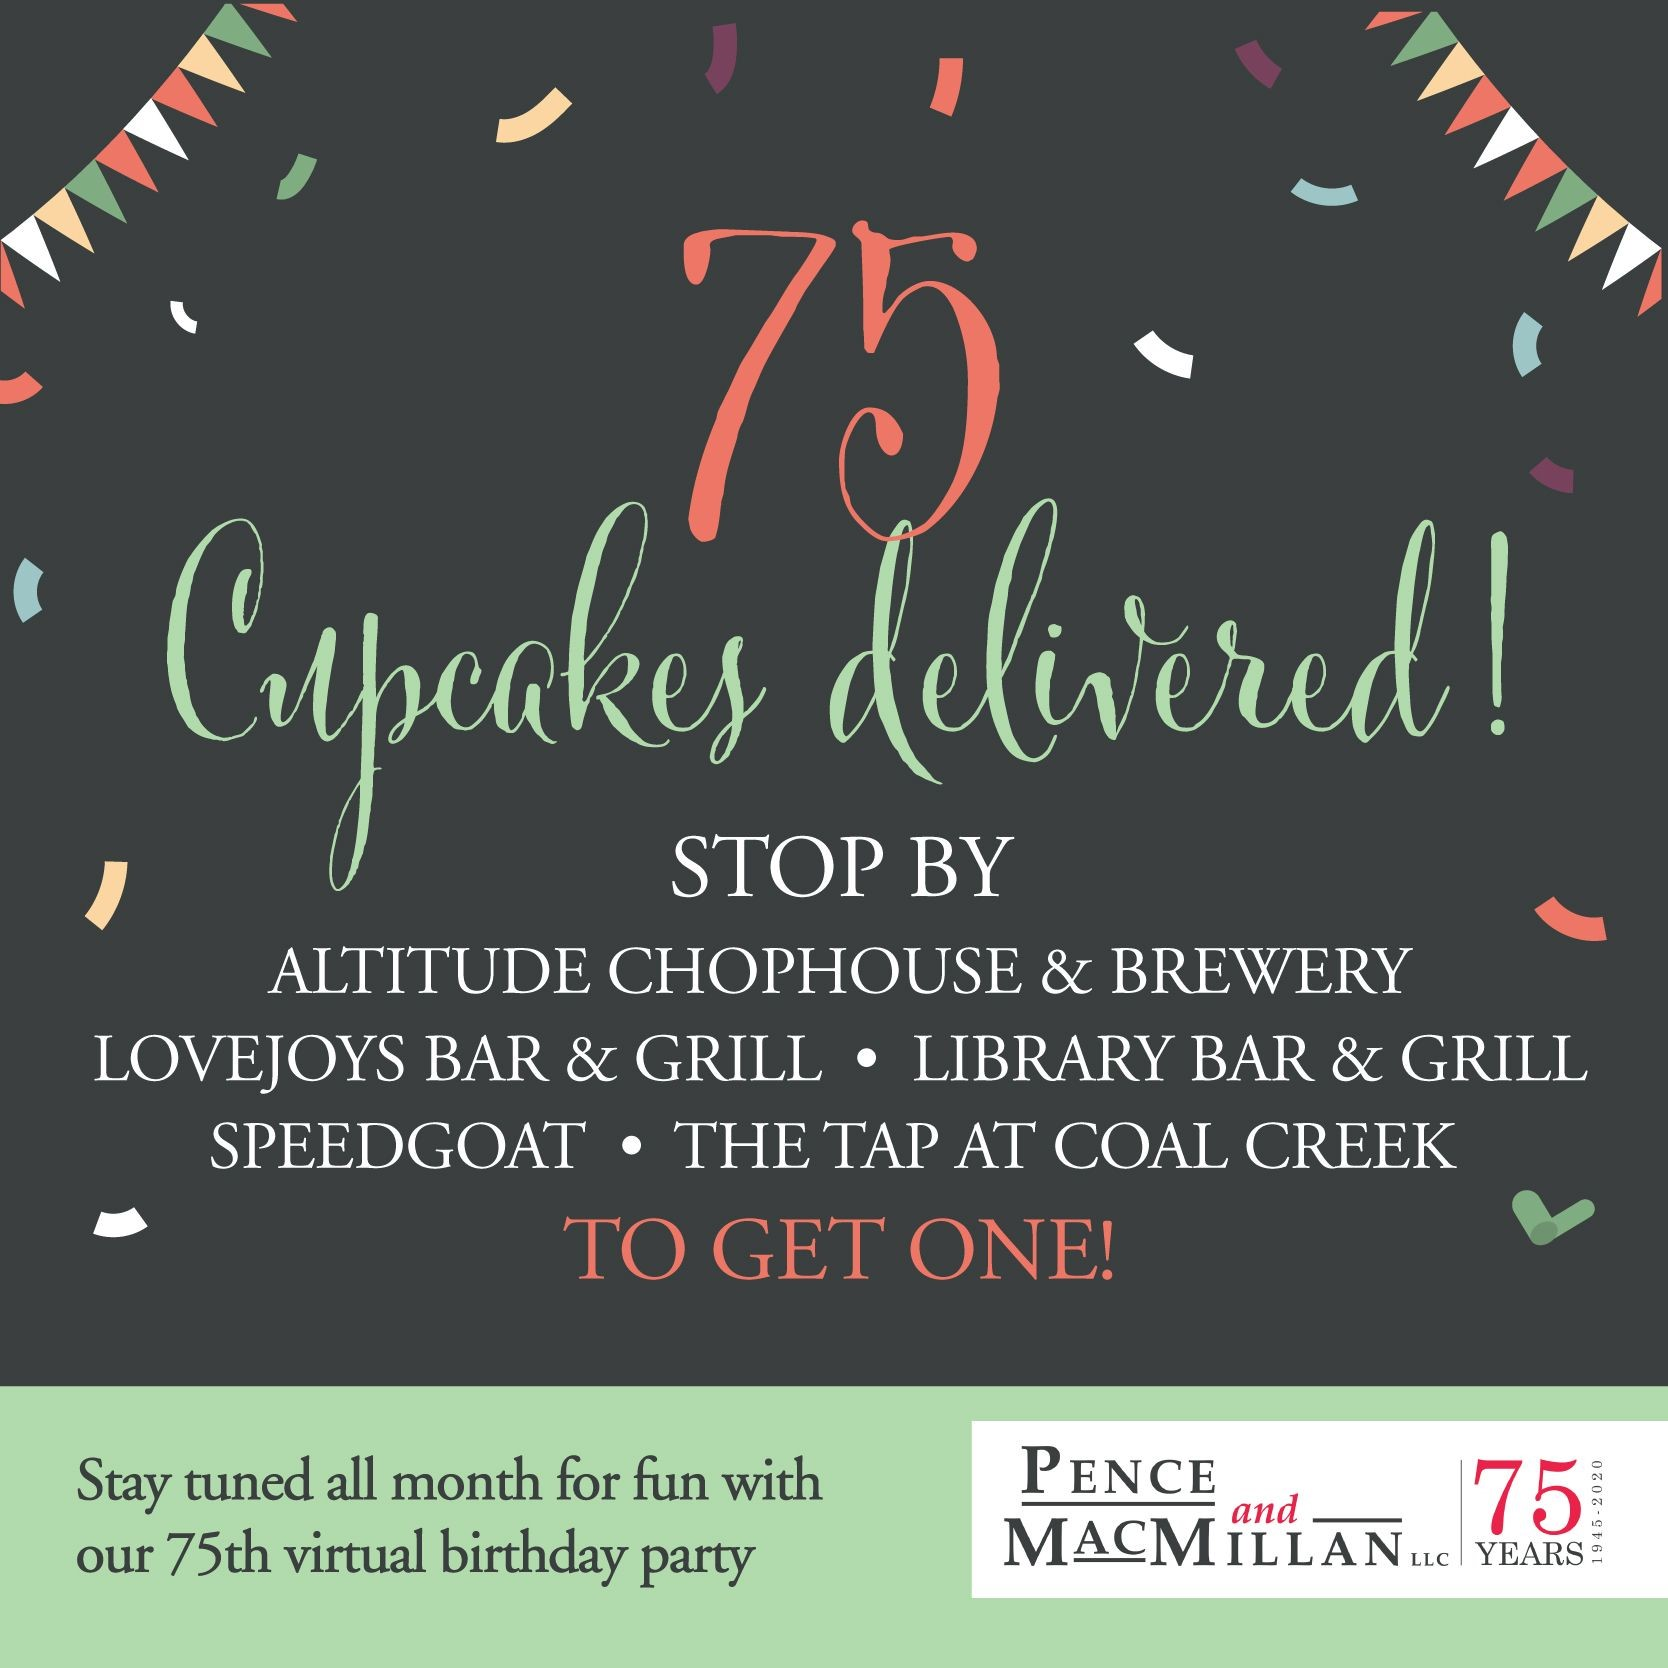 75 cupcakes delivered! Stop by Altitude Chophouse & Brewery, Lovejoys Bar & Grill, Library Bar & Grill, Speedgoat, The Tap at Coal Creek to get one! Stay tuned all month for fun with our 75th virtual birthday party.